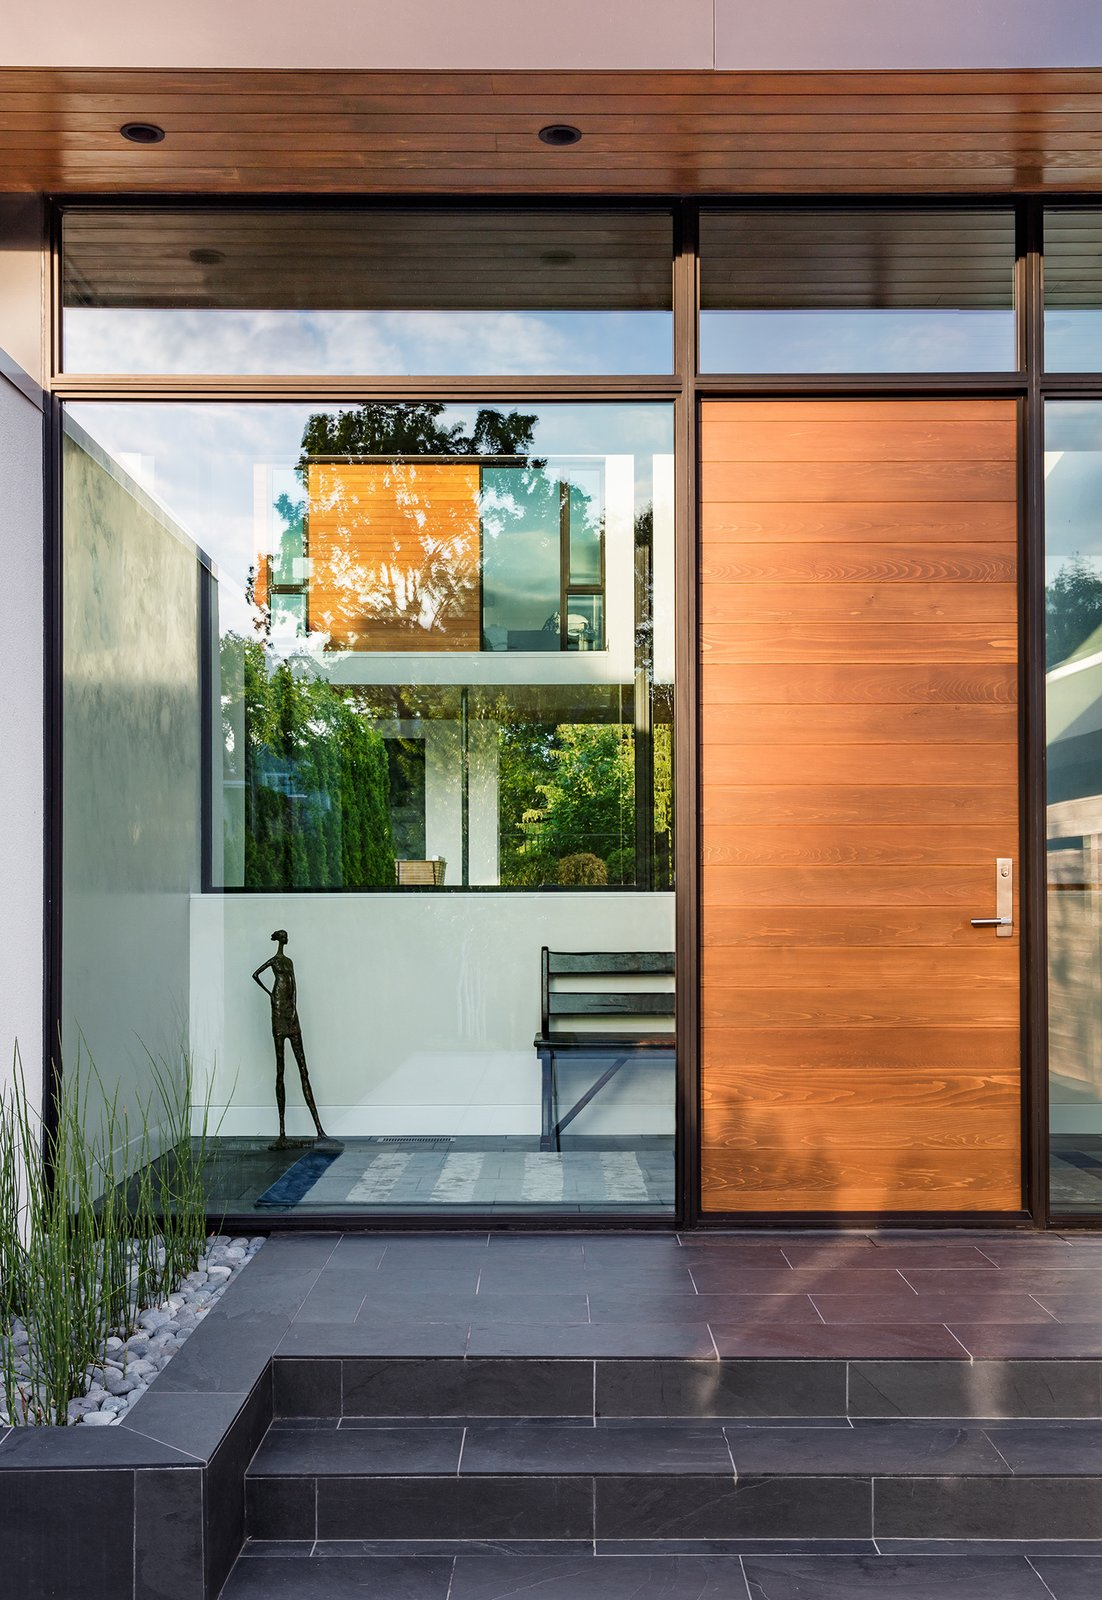 Exterior, Swing Door Type, Metal, Picture Window Type, Outdoor, Front Yard, Tile Patio, Porch, Deck, and Raised Planters  Calhoun Pavilions Residence by Peterssen/Keller Architecture